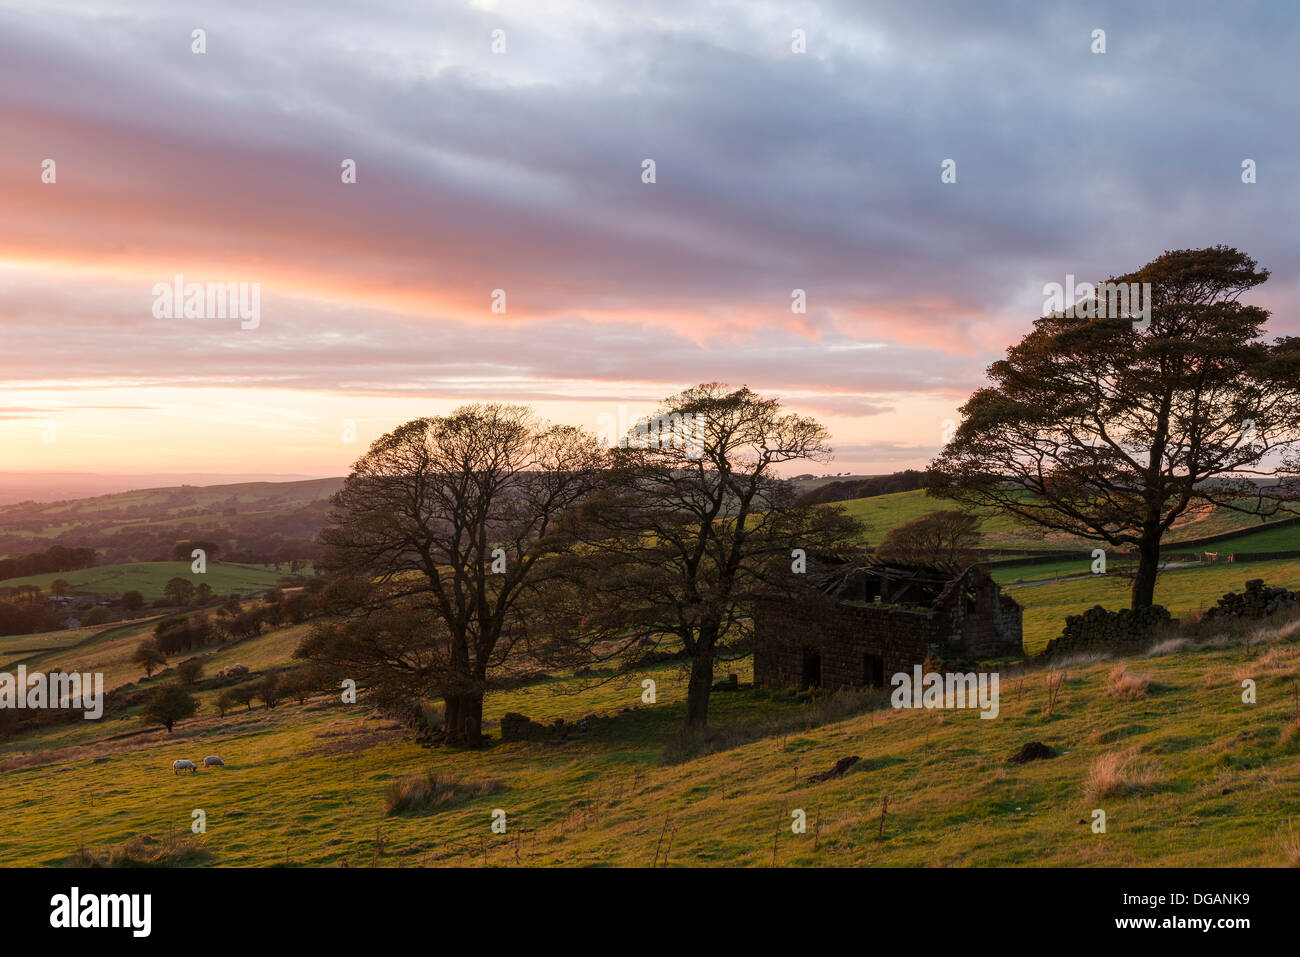 Barn ruin at Roach End on the edge of The Roaches, Staffordshire Moorlands. Taken in October at sundown - Stock Image